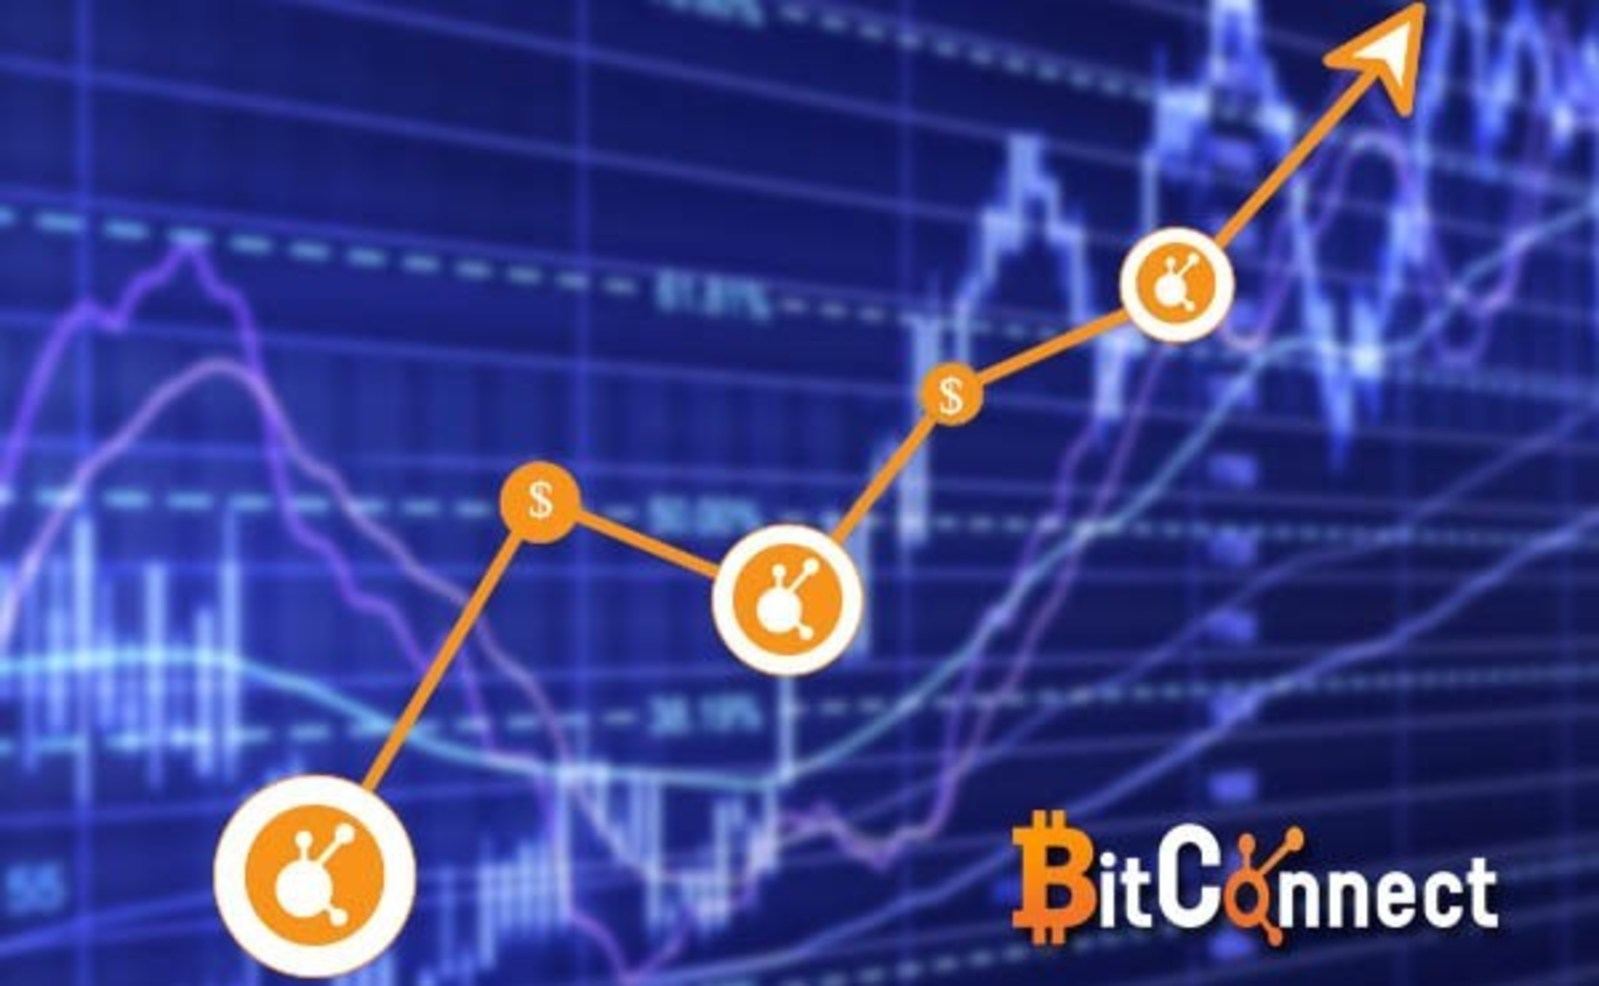 BitConnect Coin Outperforms Ethereums Initial Growth, 6 Months Following ICO